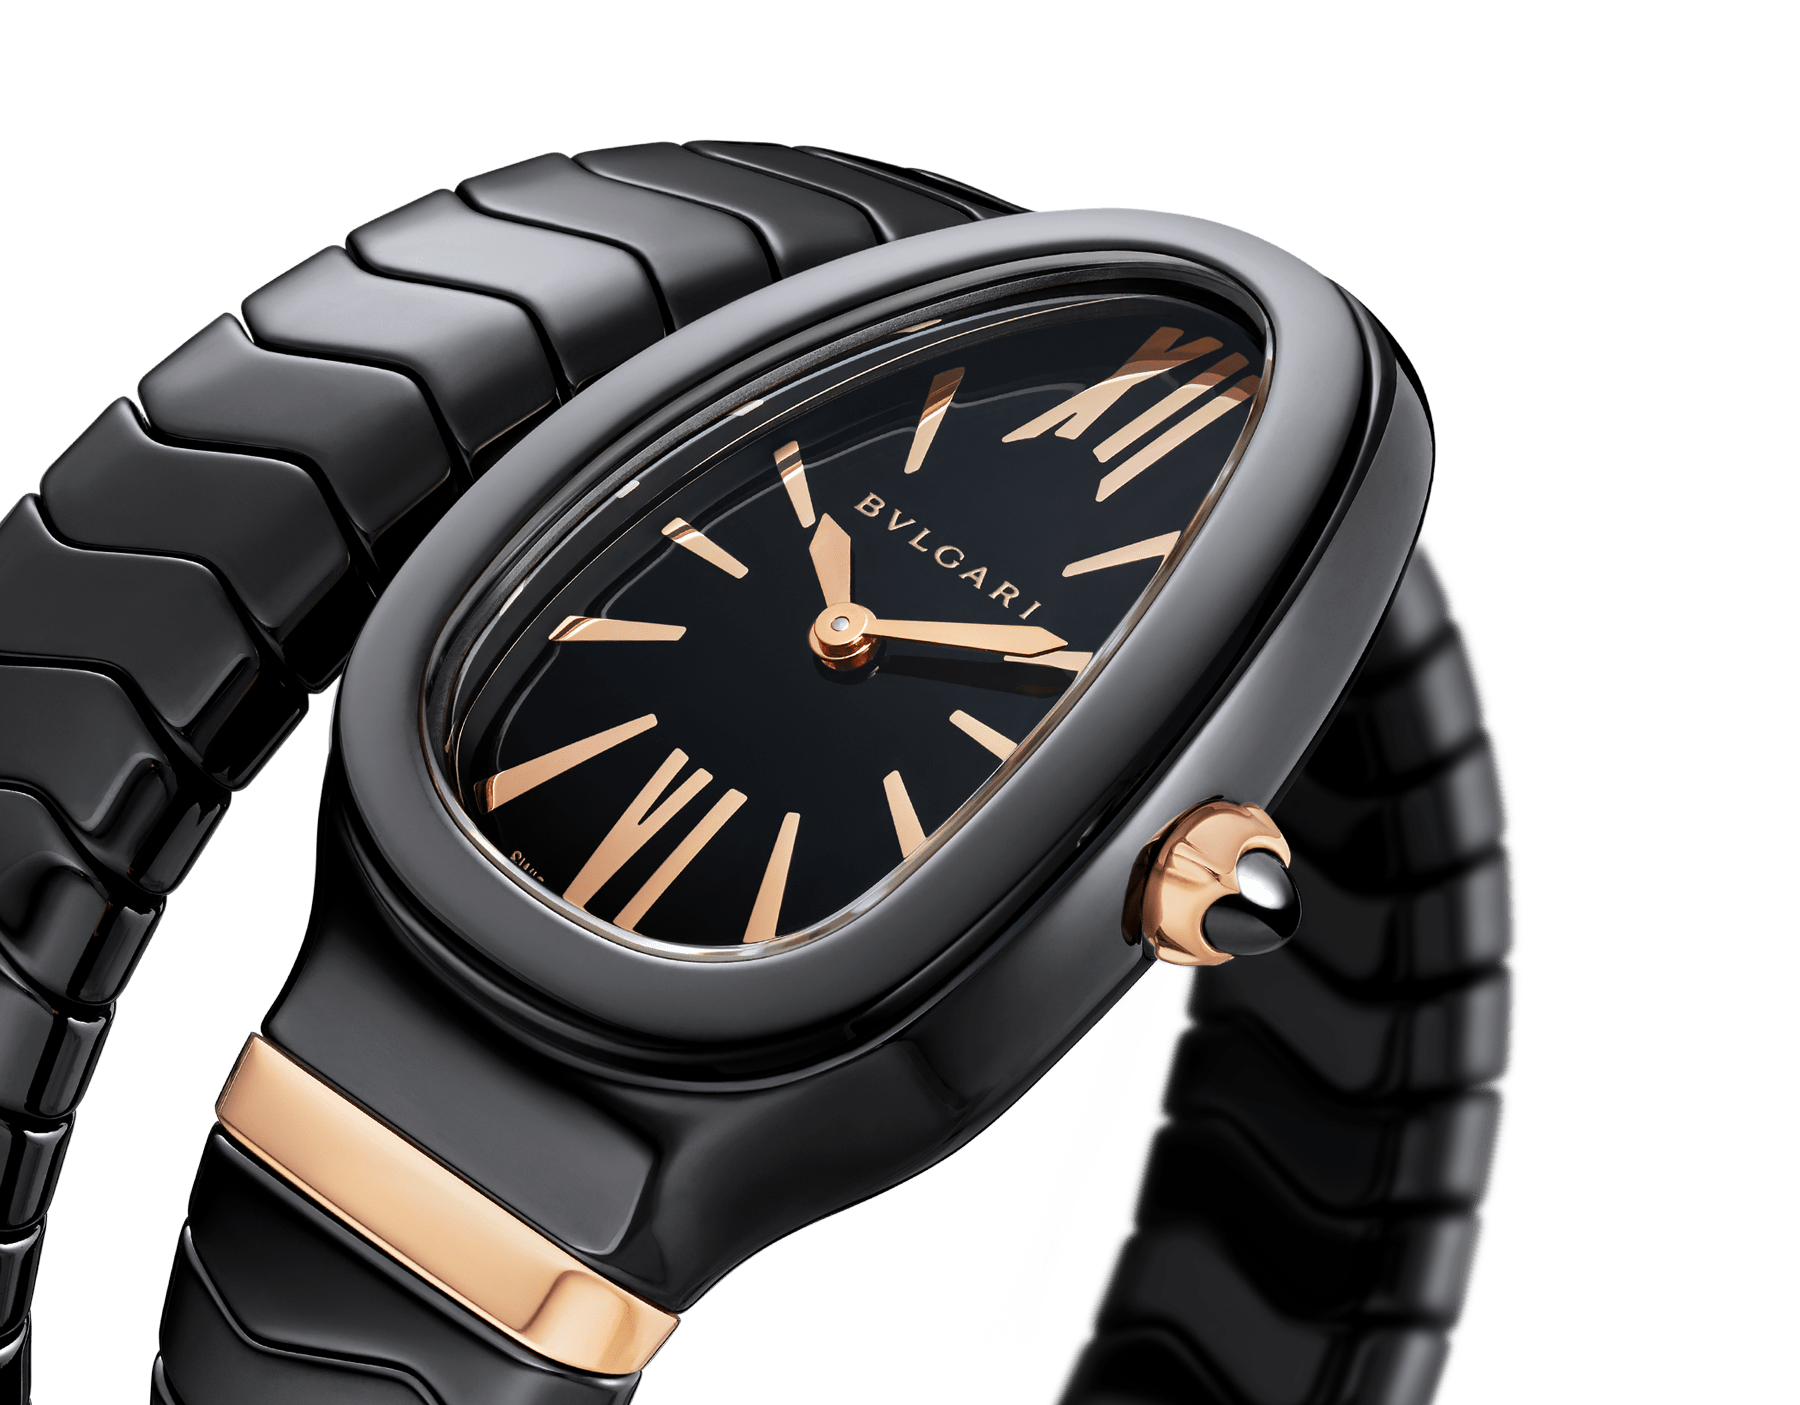 Serpenti Spiga single spiral watch with black ceramic case, black lacquered dial and black ceramic bracelet set with 18 kt rose gold elements. 102734 image 3